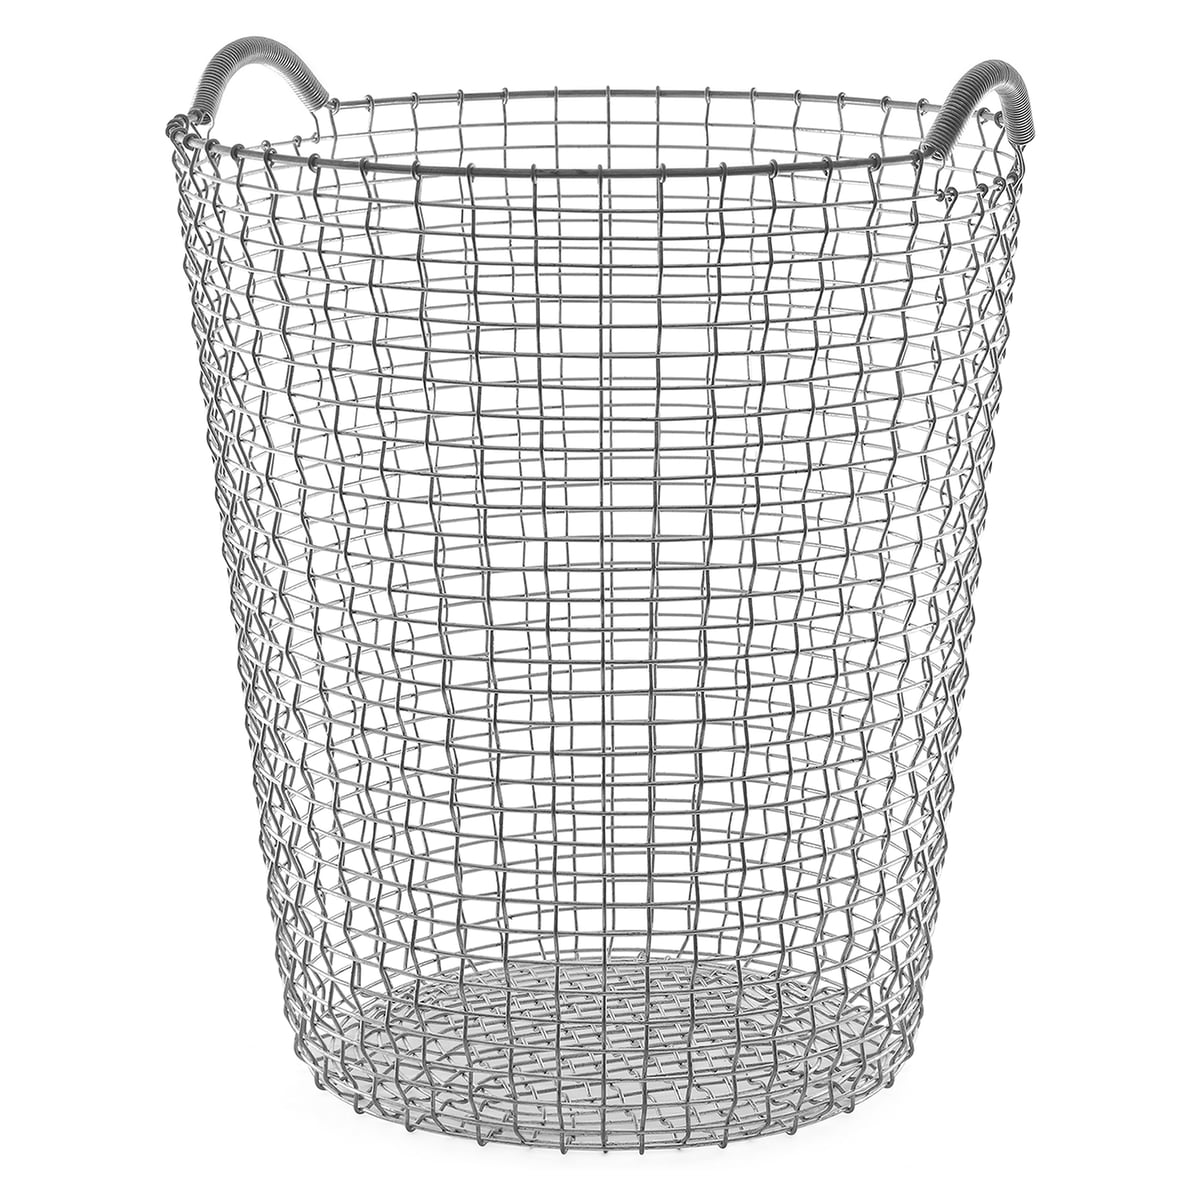 Buy the Classic 80 basket by Korbo in the Shop